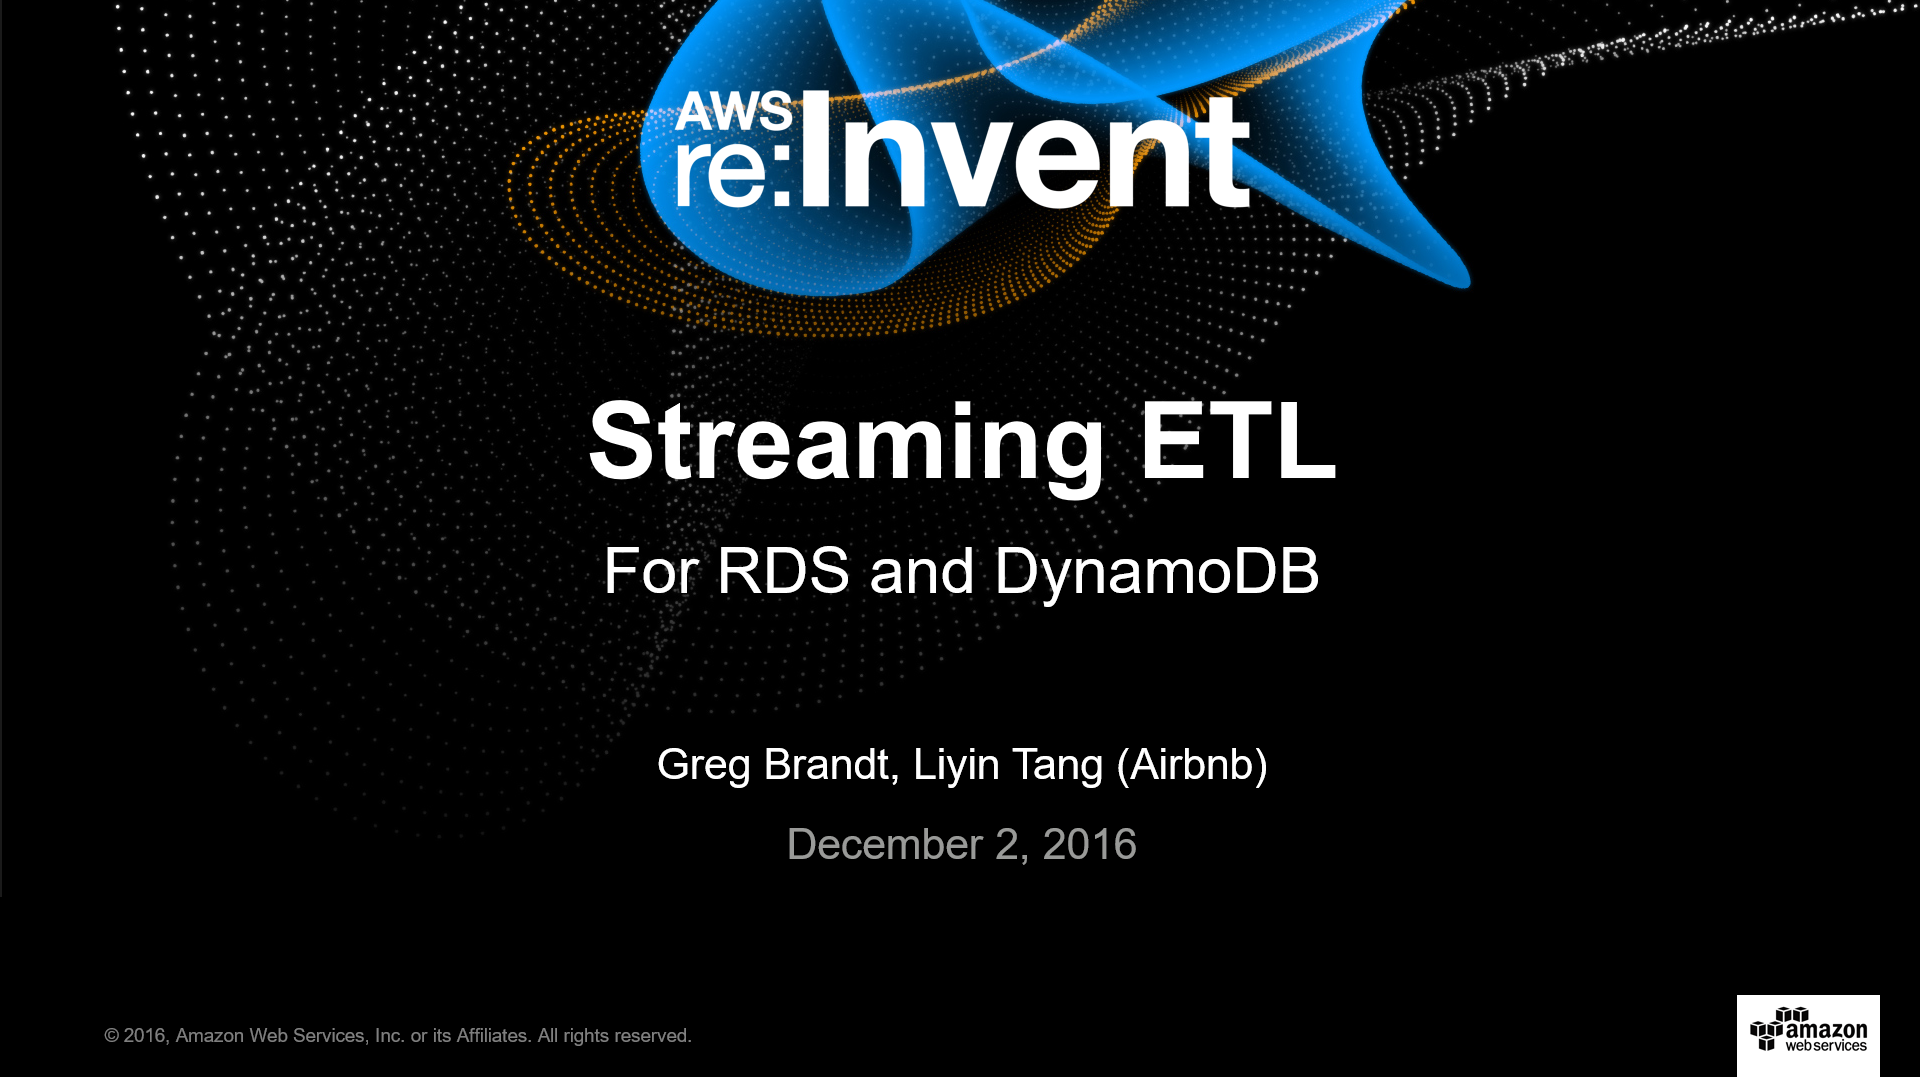 DAT315 Streaming ETL for RDS and DynamoDB